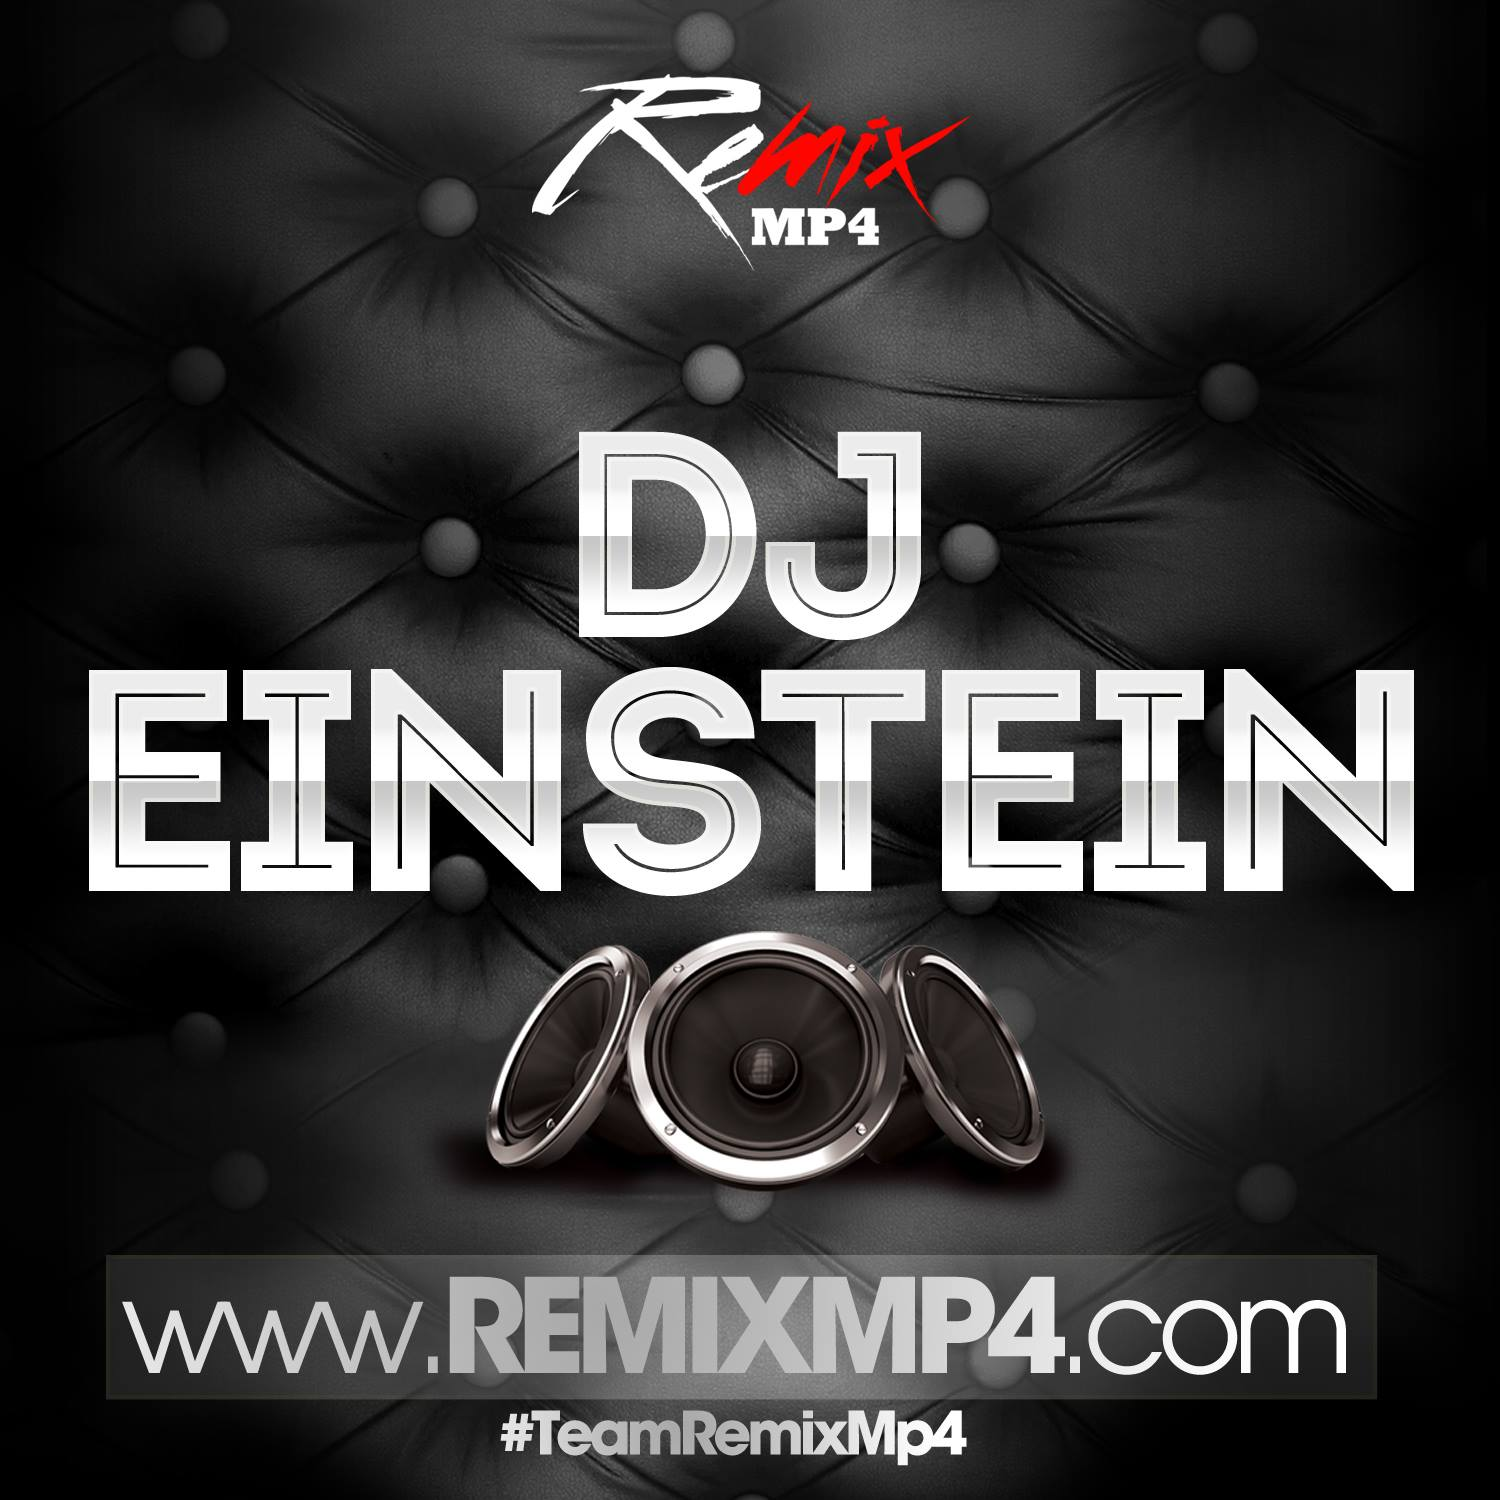 Intro Percapella 97bpm [Dj Einstein]